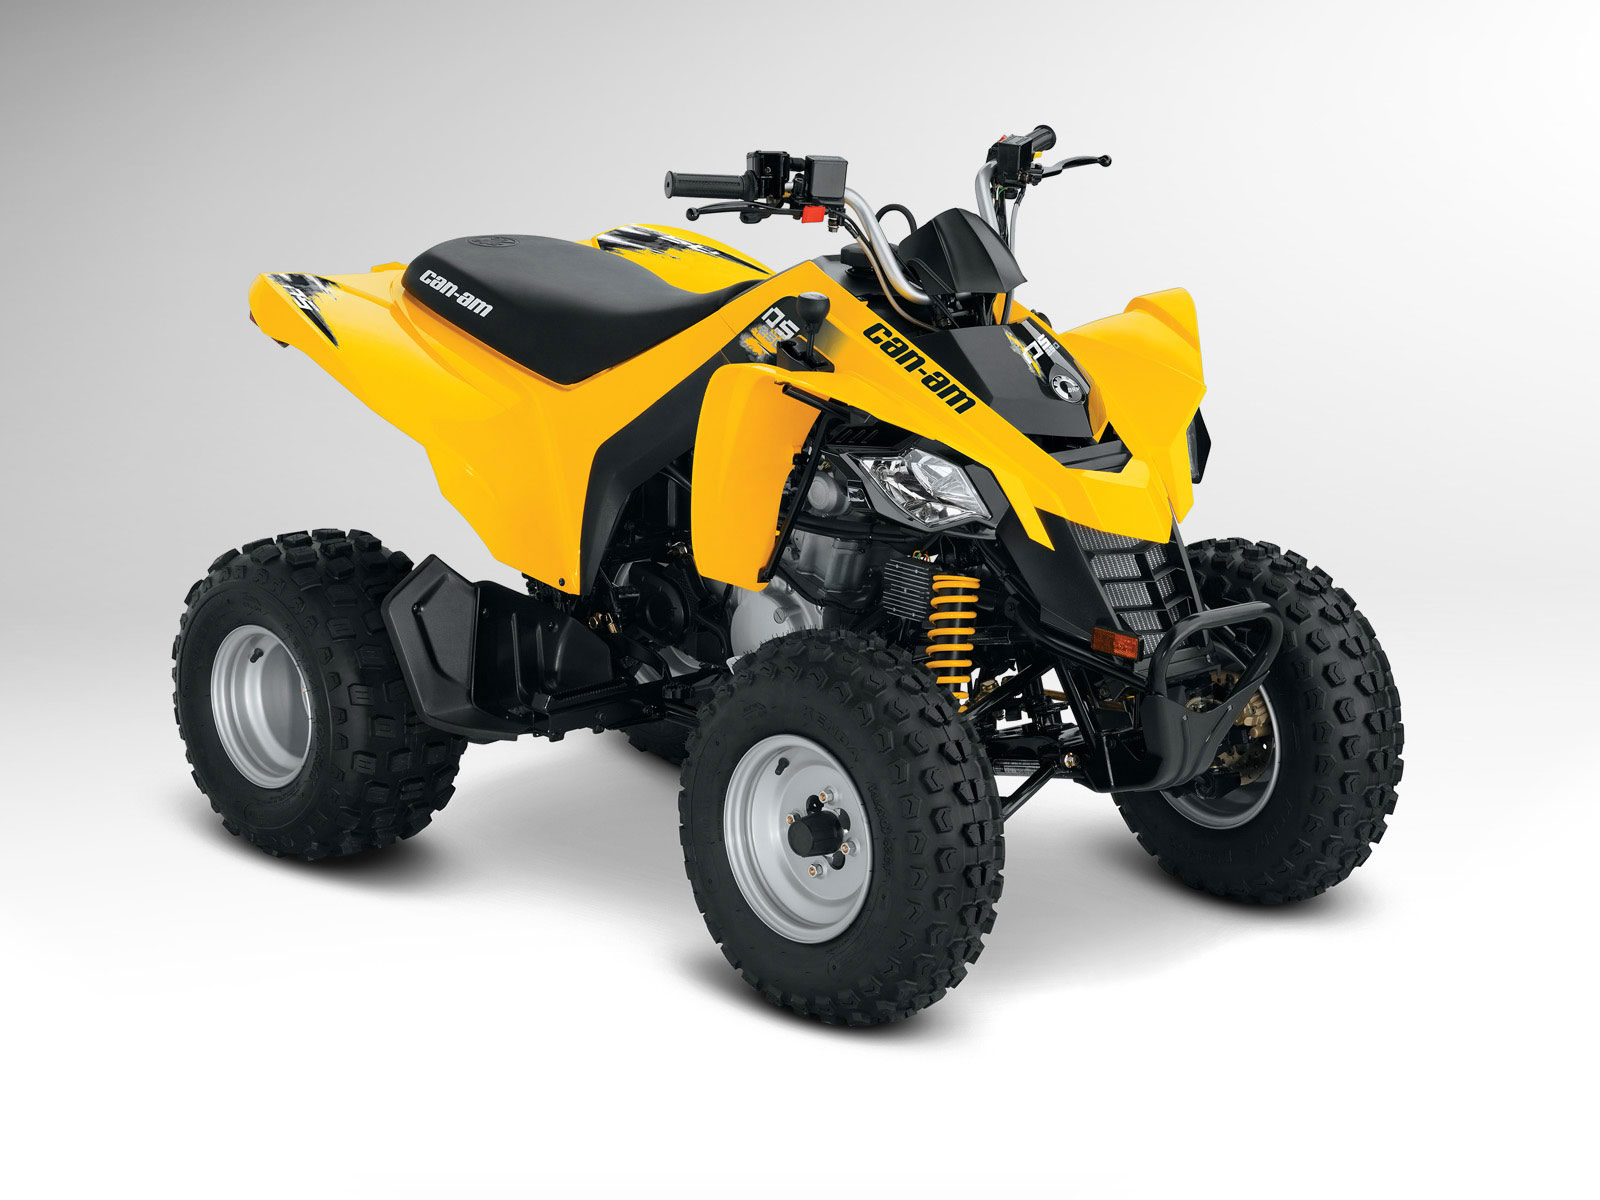 2012 Can-Am DS 250 ATV pictures 2